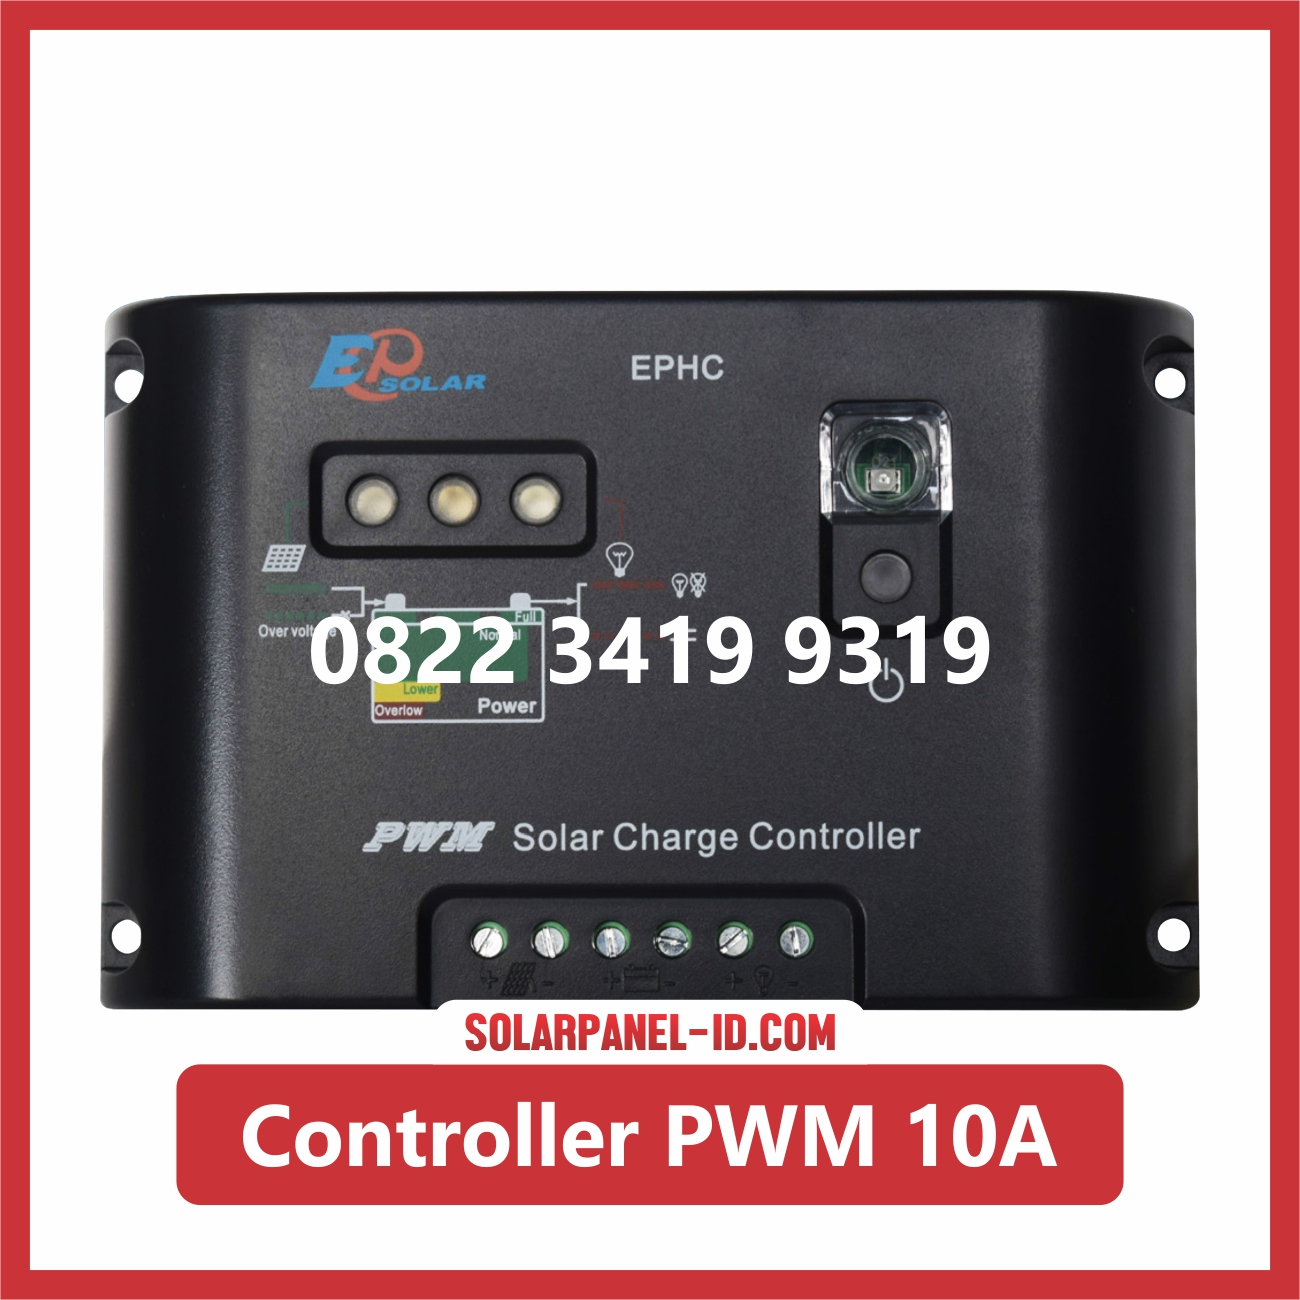 Jual Solar Charge Controller PWM 10A 12v 24v Solar Cell Solarcell Solar Panel Surya